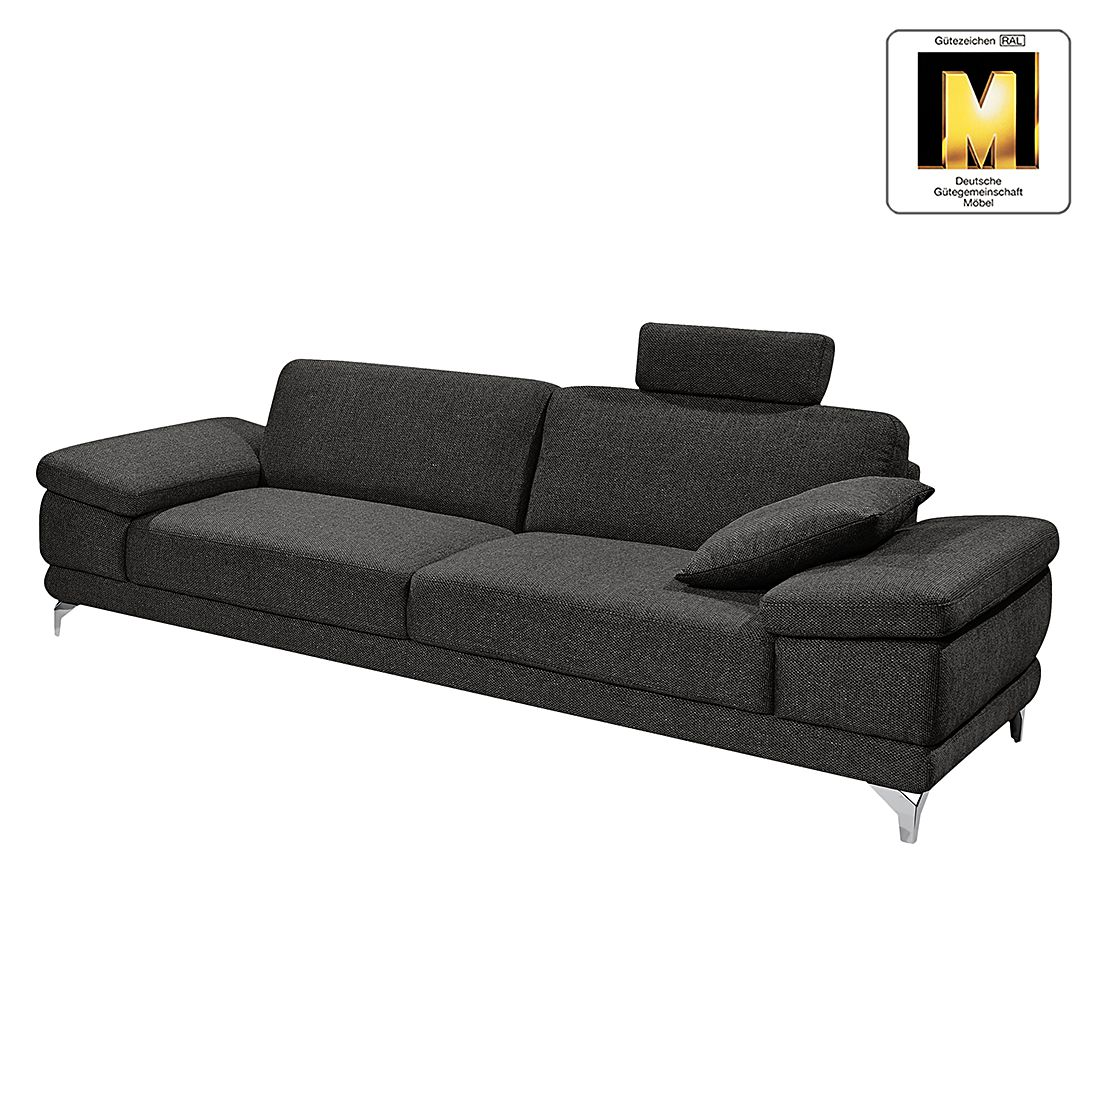 ecksofa panther inspirierendes design f r wohnm bel. Black Bedroom Furniture Sets. Home Design Ideas